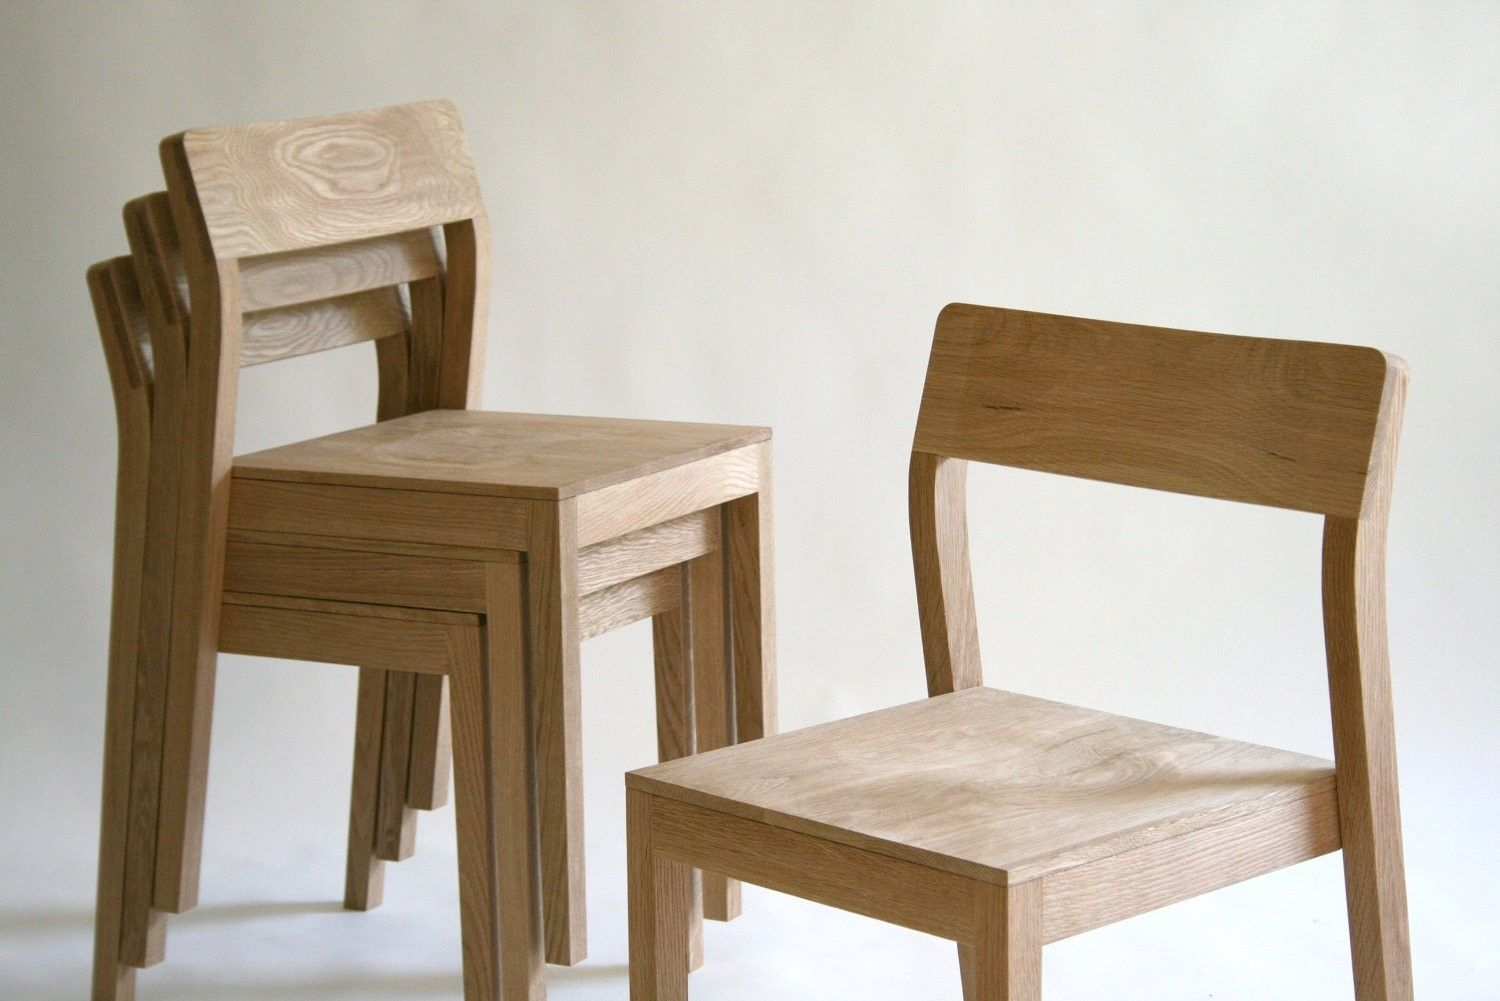 Wooden Chairs Hand Made Stackable Wood Dining Chair By Kapel Designs